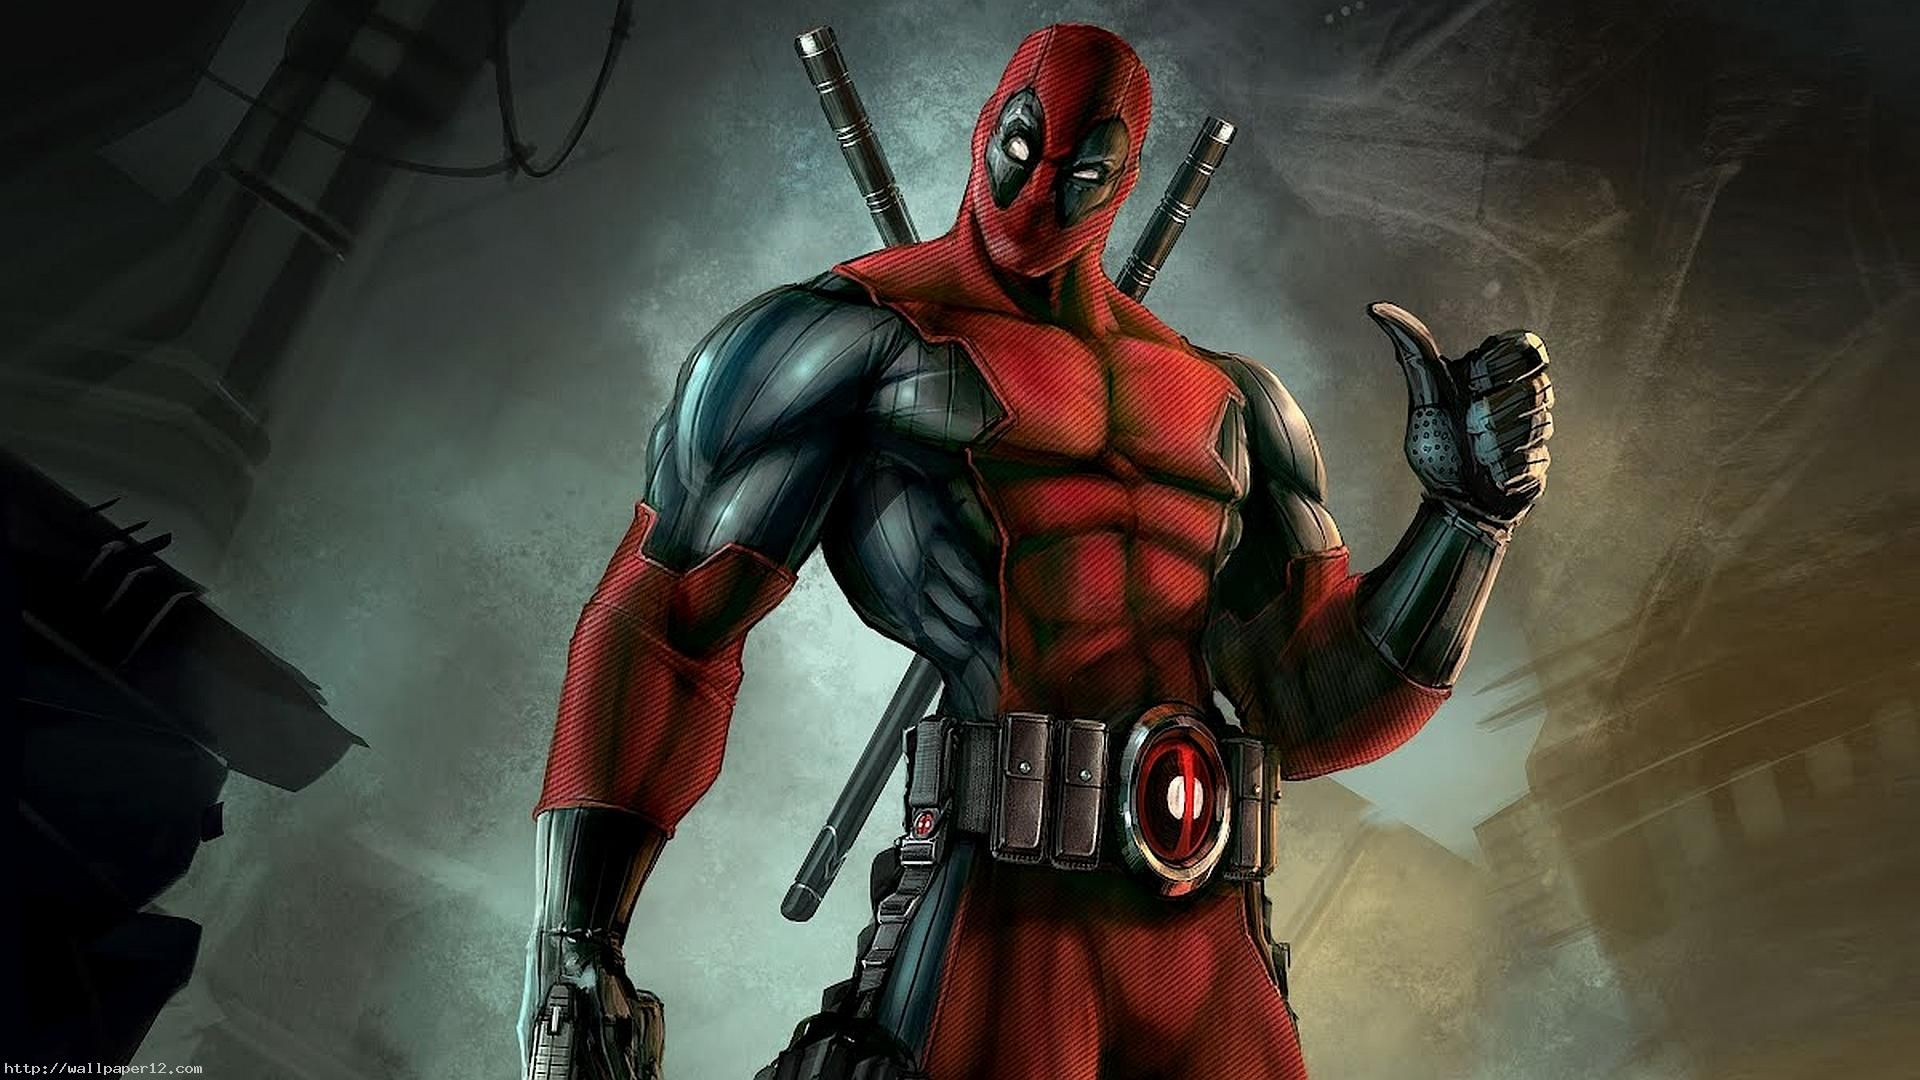 Marvel Deadpool Movie Wallpapers HD 1920x1080 46